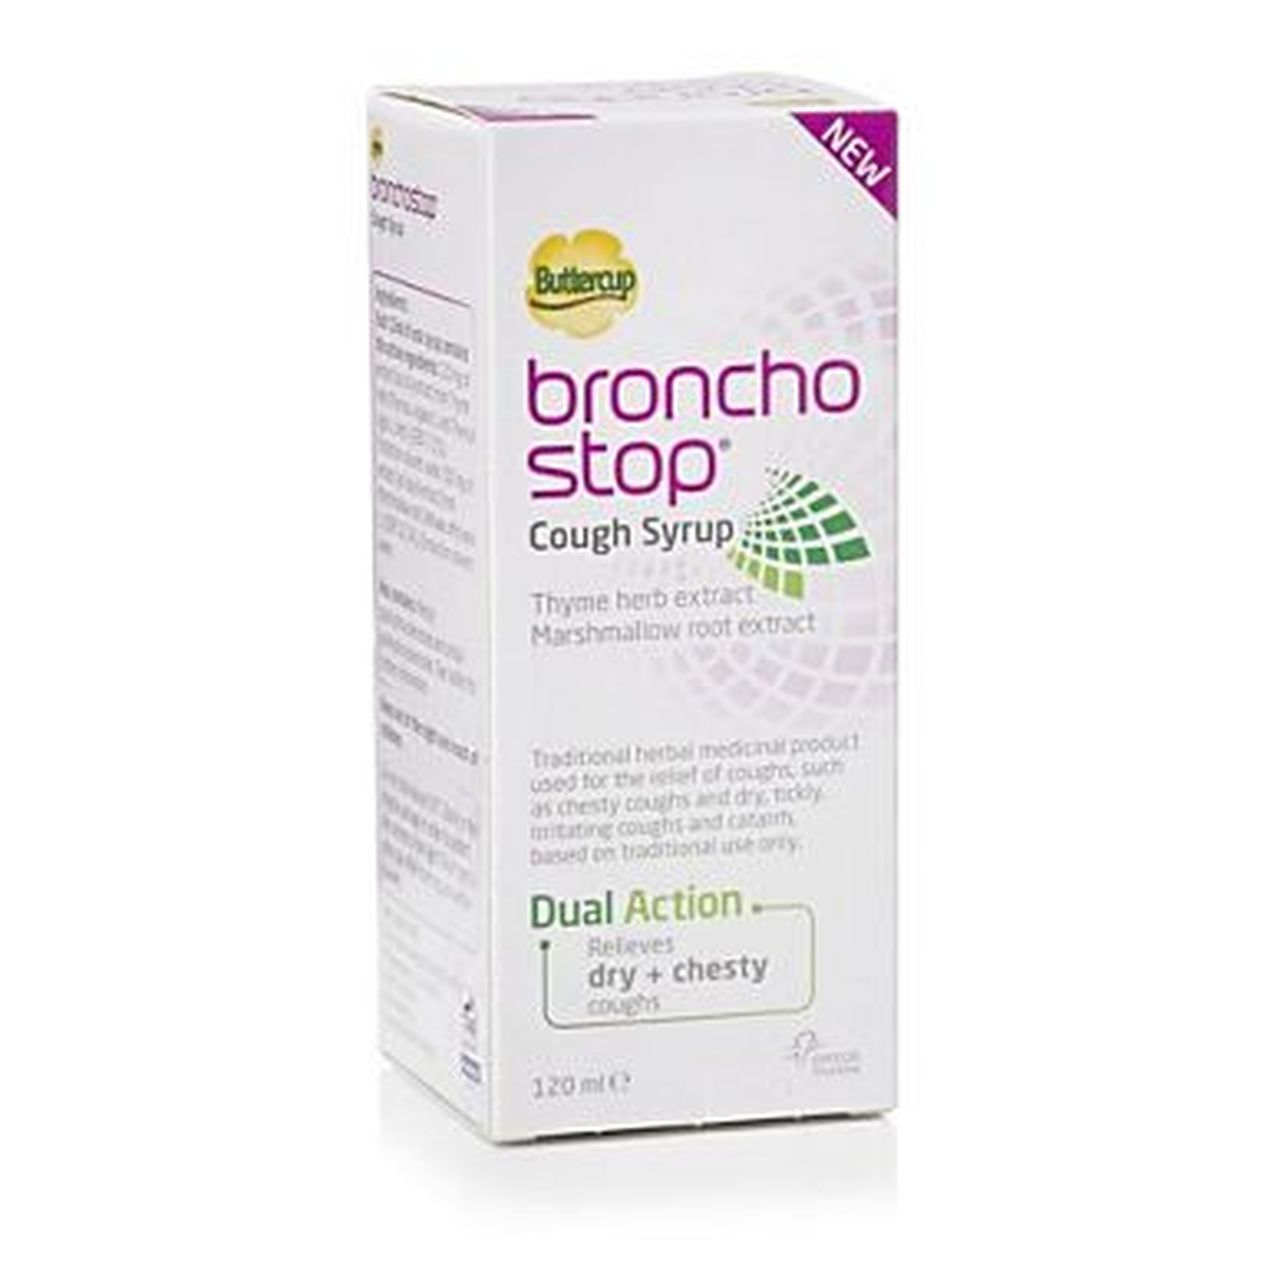 BUTTERCUP BRONCHOSTOP COUGH SYRUP 120ML